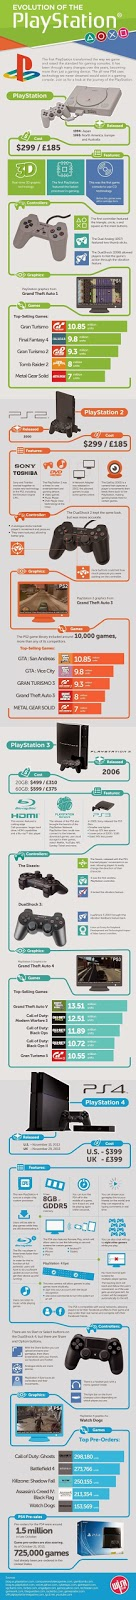 http://theultralinx.com/2014/02/evolution-playstation-infographic.html